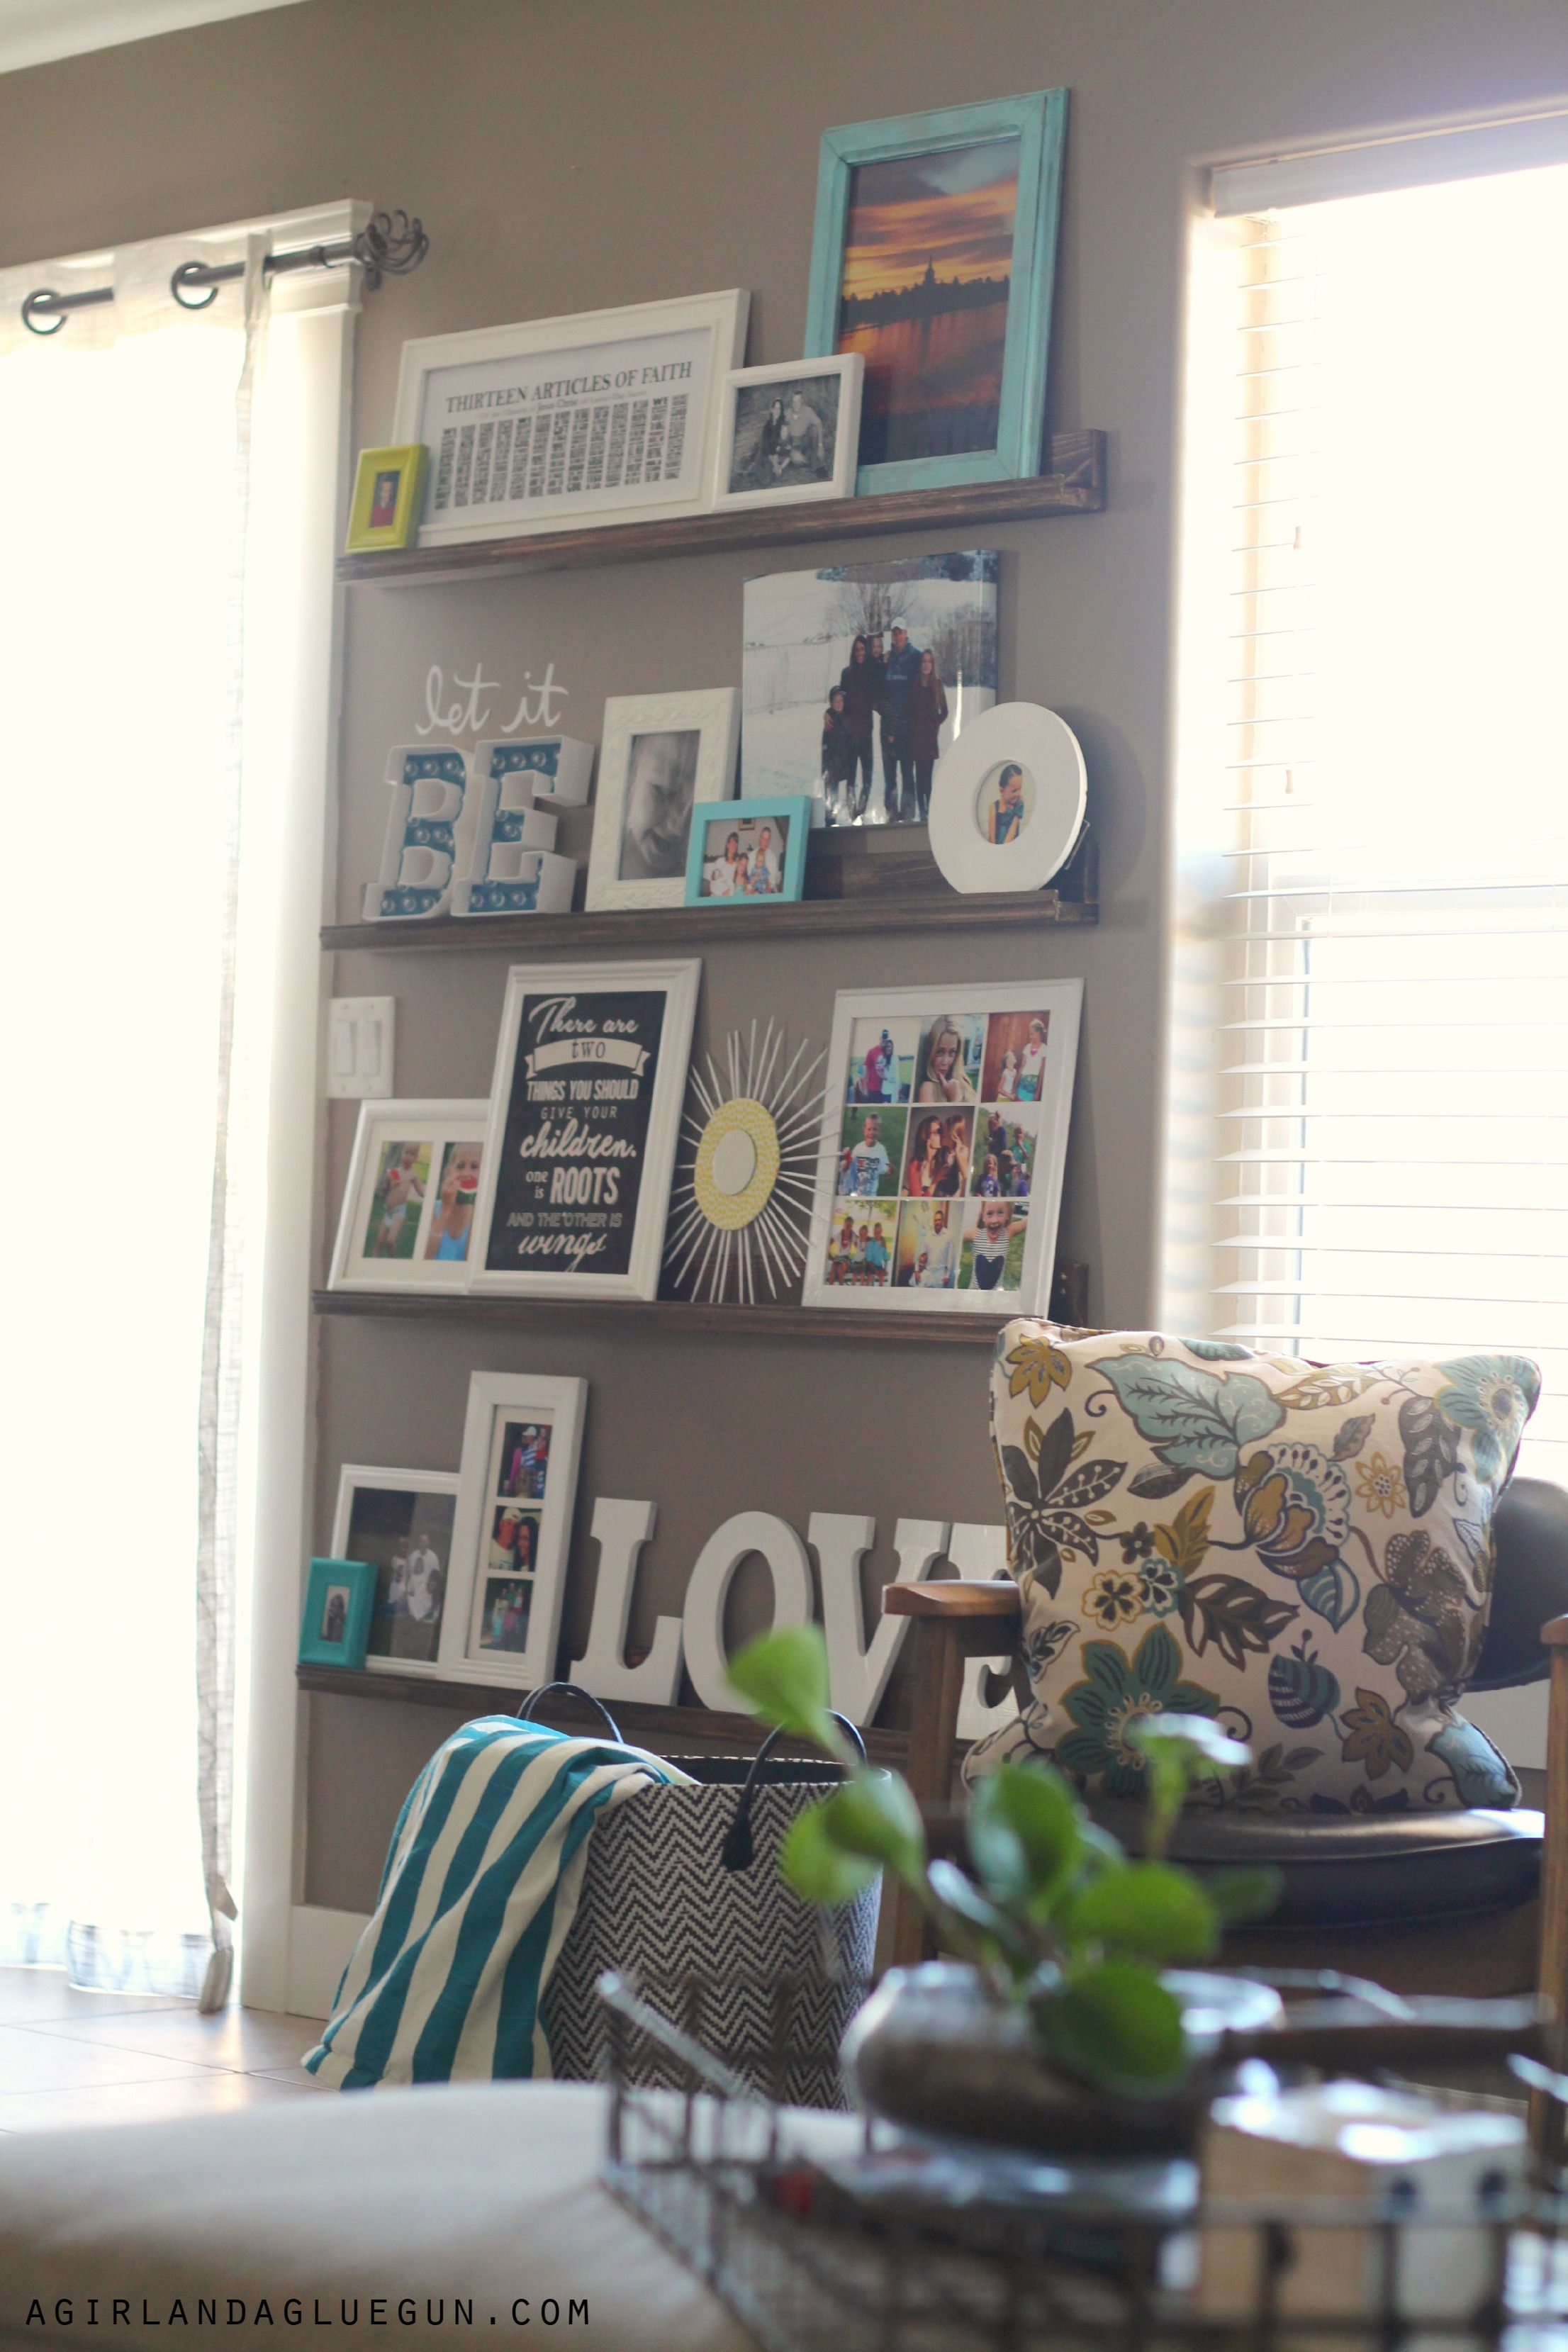 The 25 Best Decorating With Pictures Ideas On Pinterest